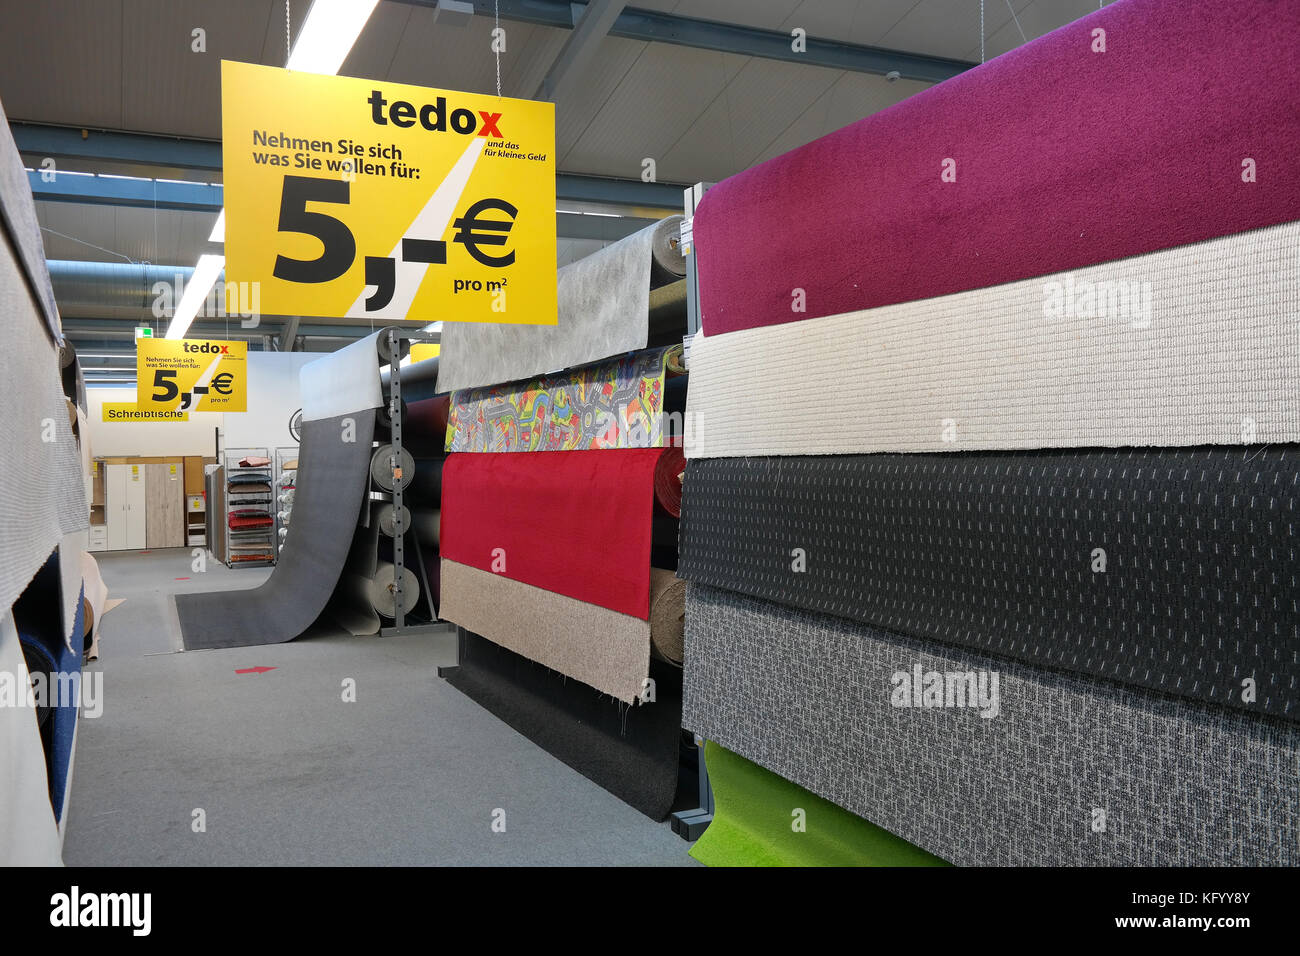 Interior of a Tedox store - Stock Image